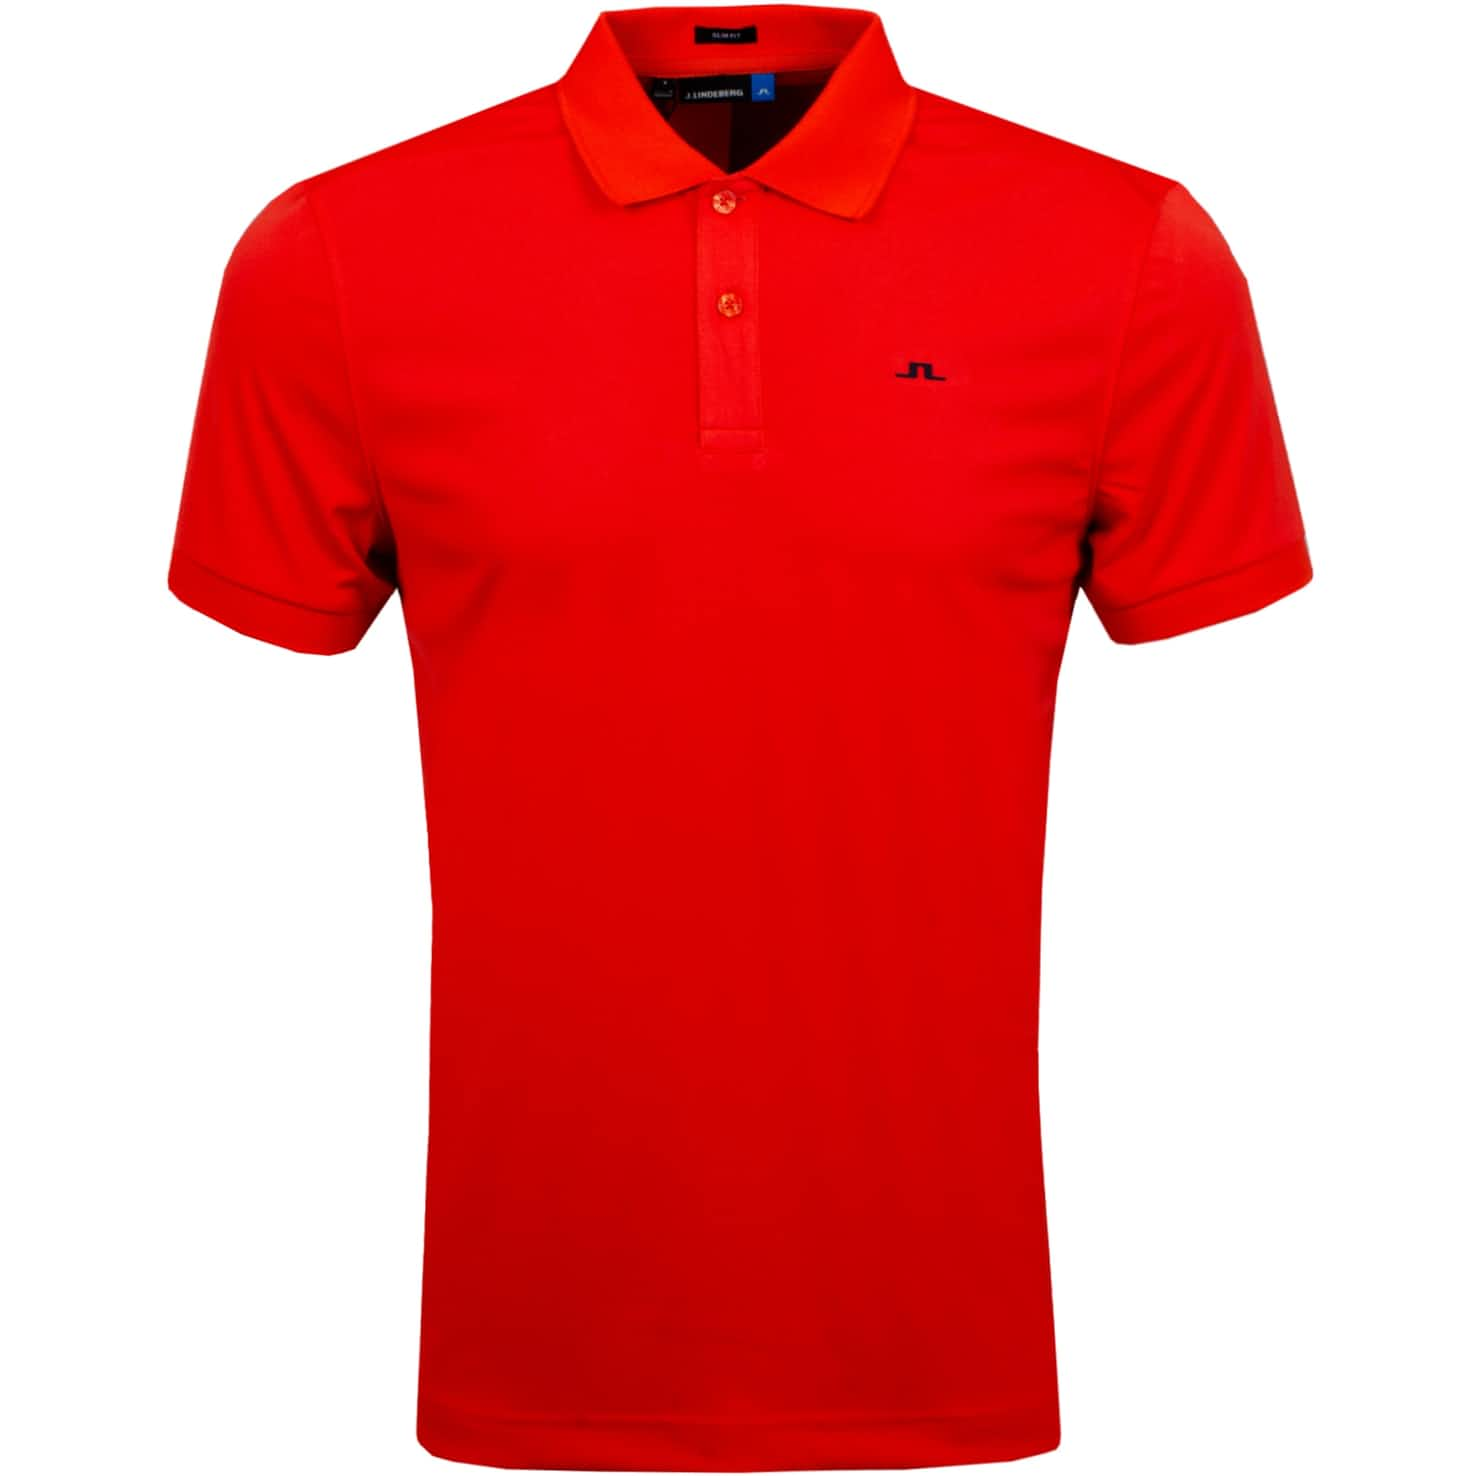 Beau Slim Fit Recycled TX Jersey Tomato Red - SS20